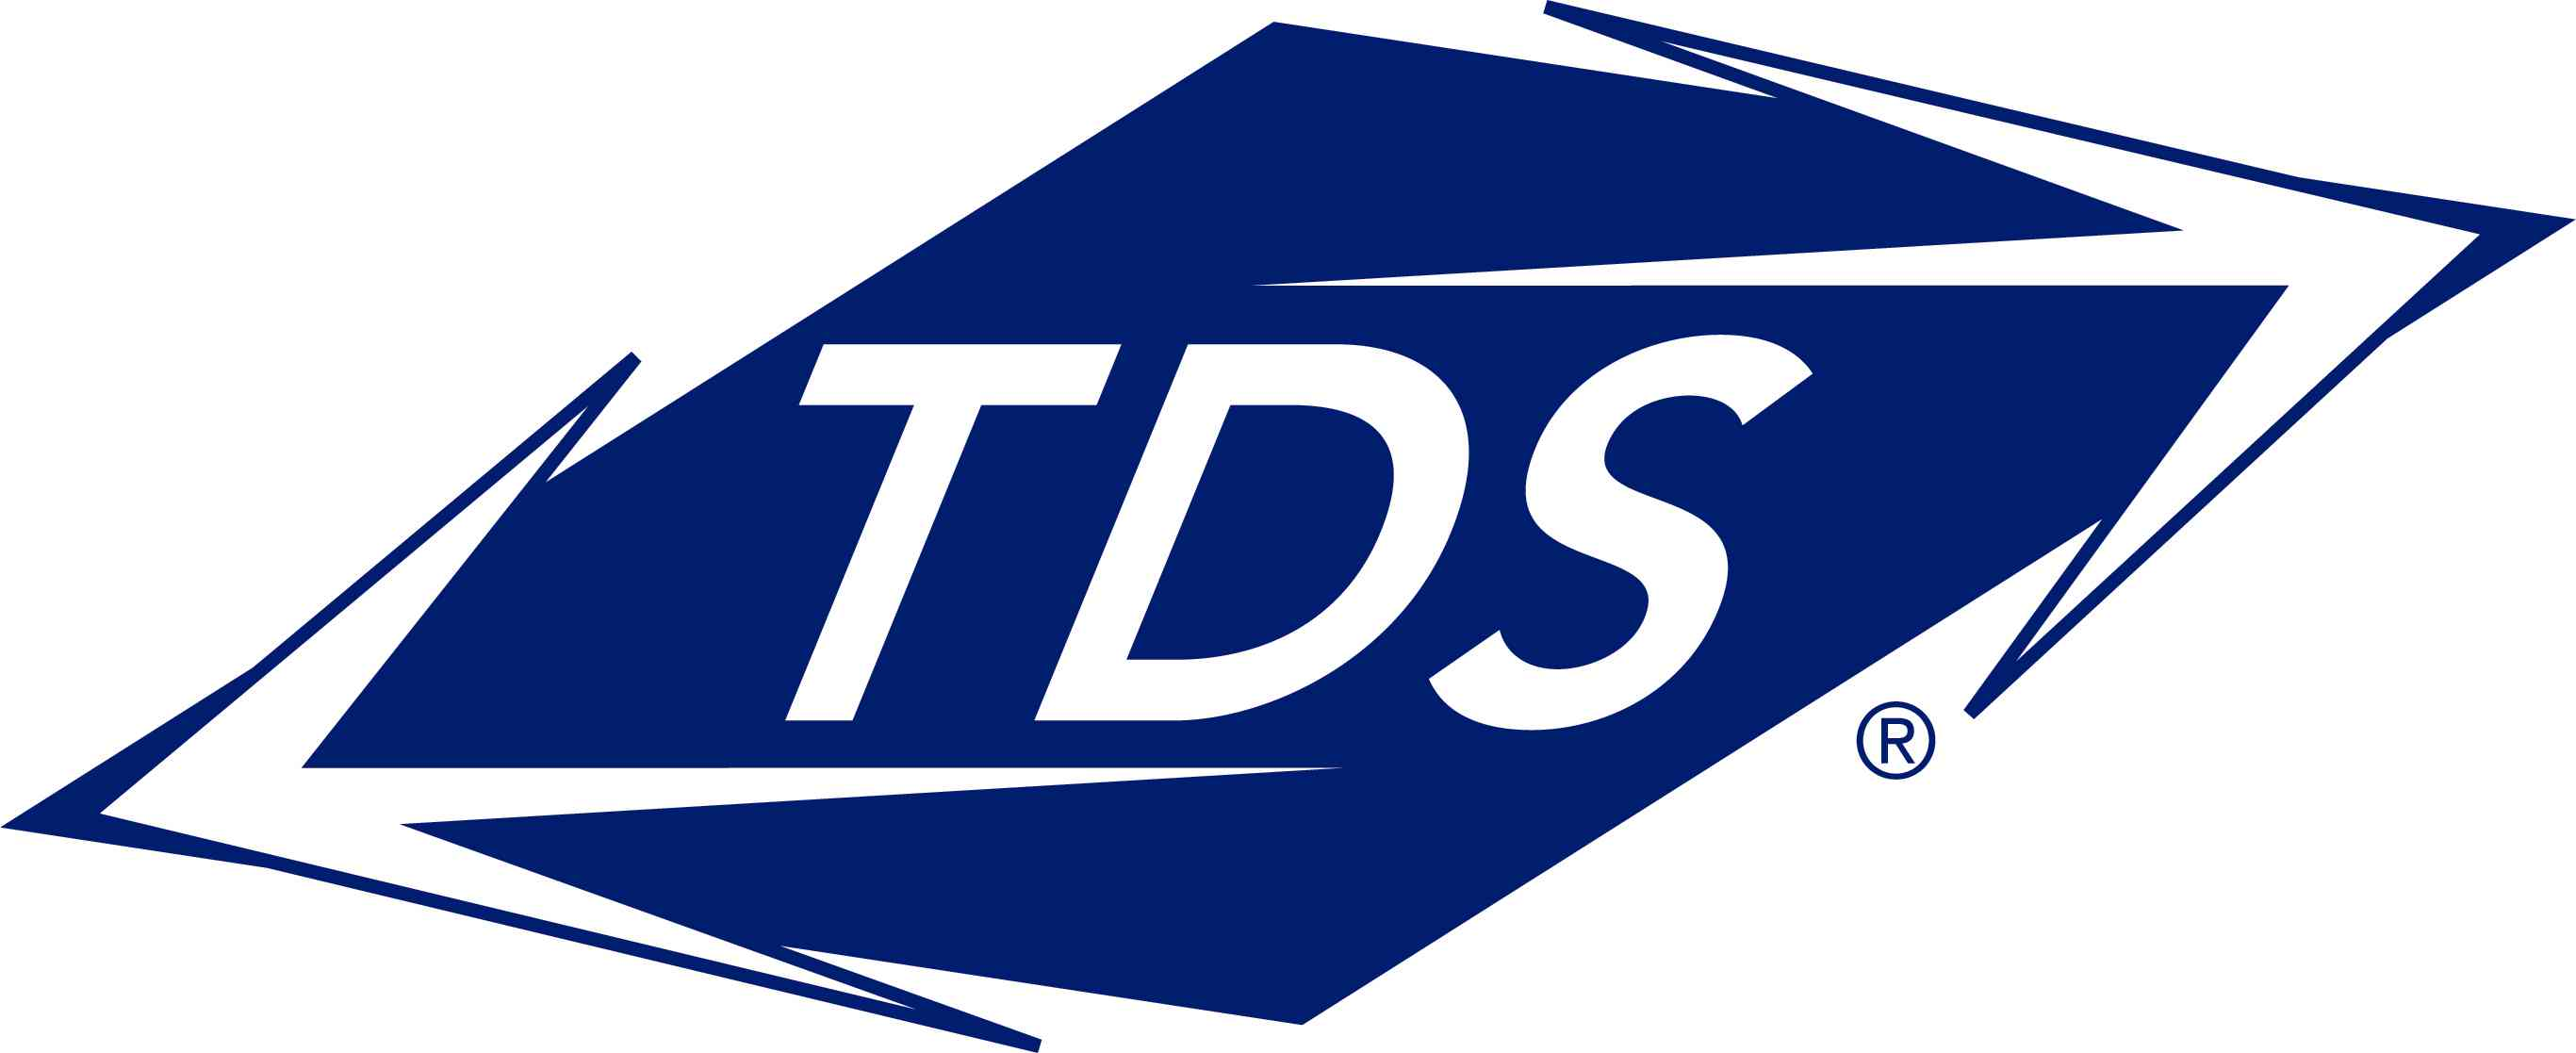 Due date for payment of TDS is 07/01/2016 for the Month of December 2015  Due Date for Filing TDS Returns for the period Oct 2015 to Dec 2015 is 15/01/2016